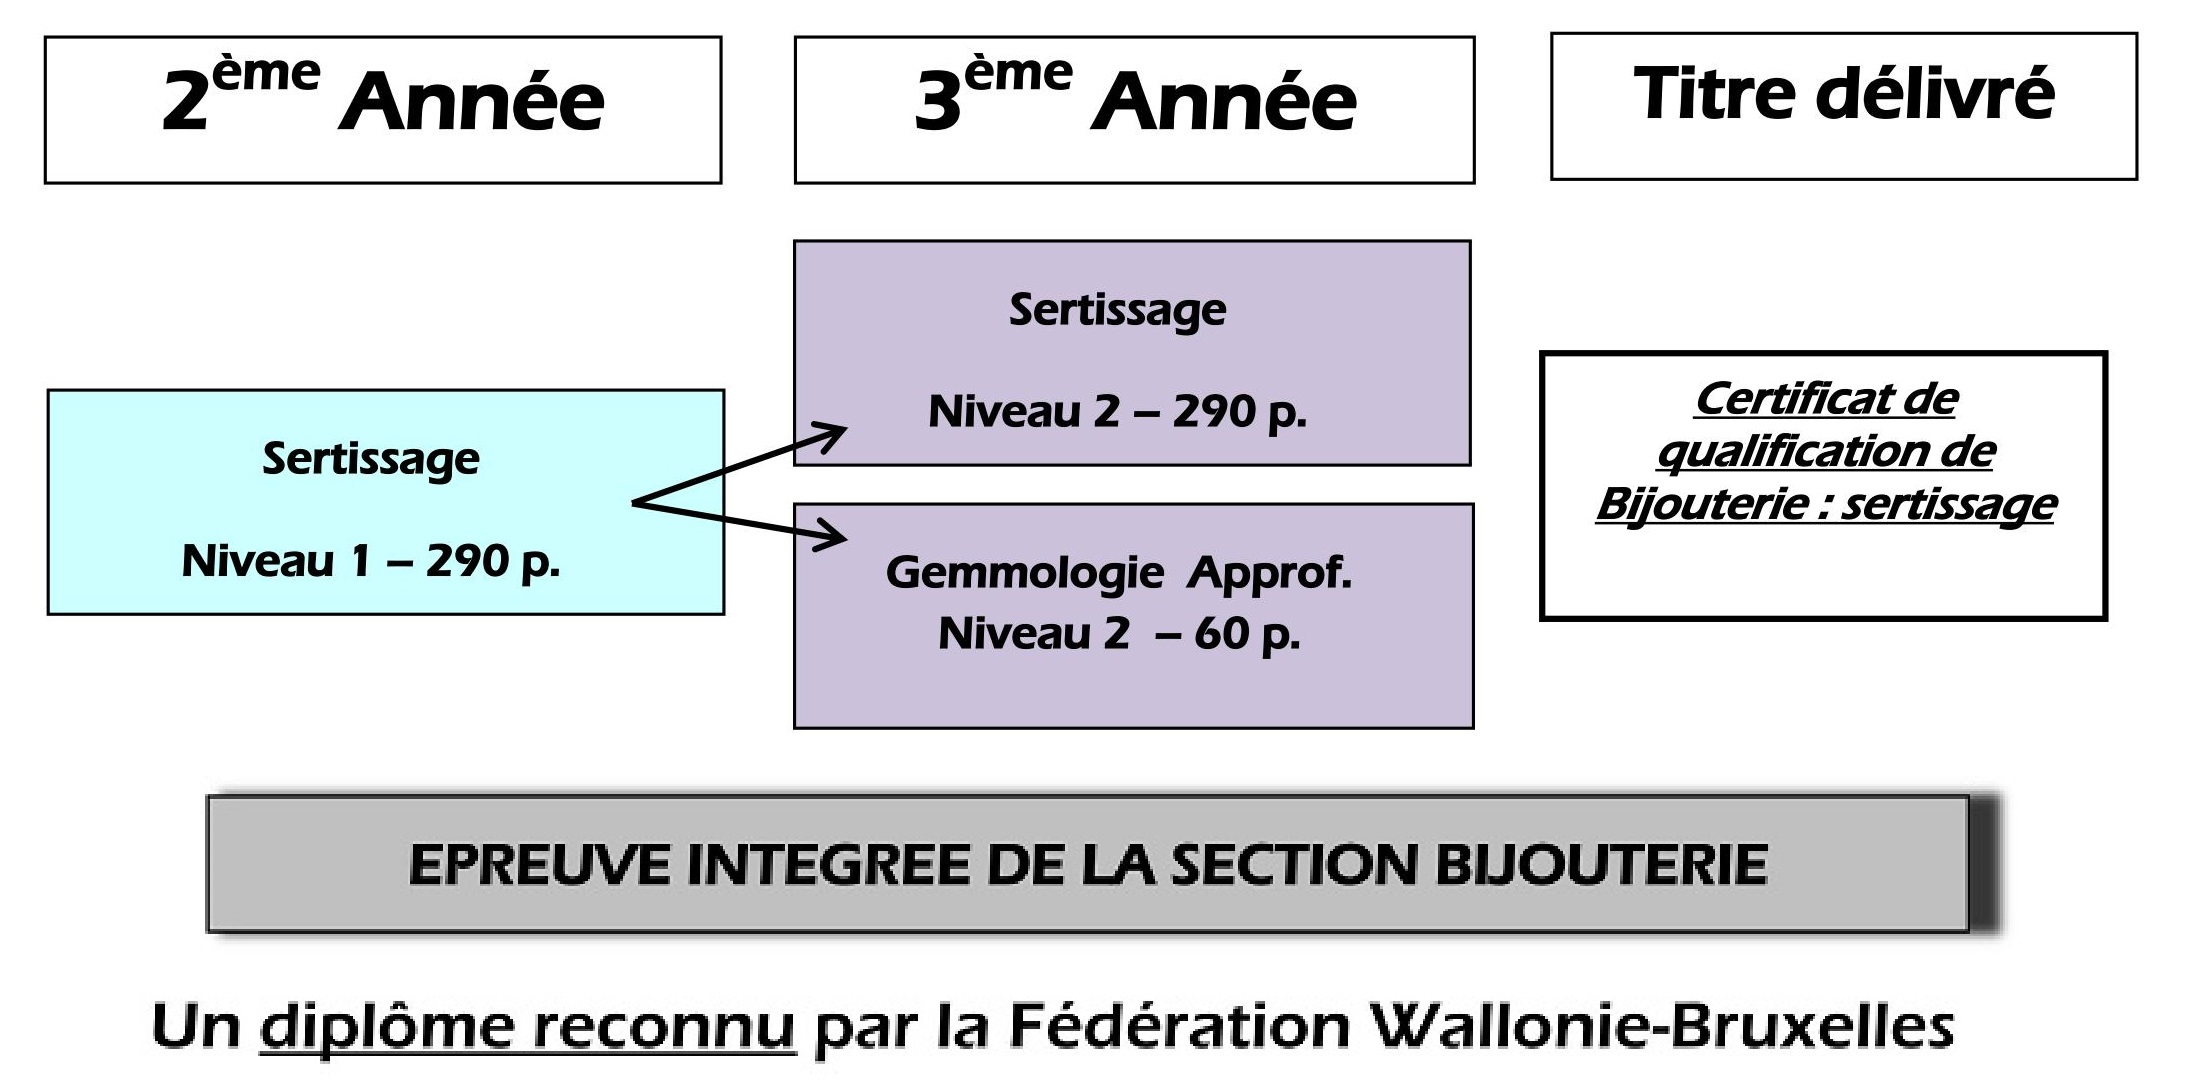 Bijouterie Sertissage – Organigramme de la section